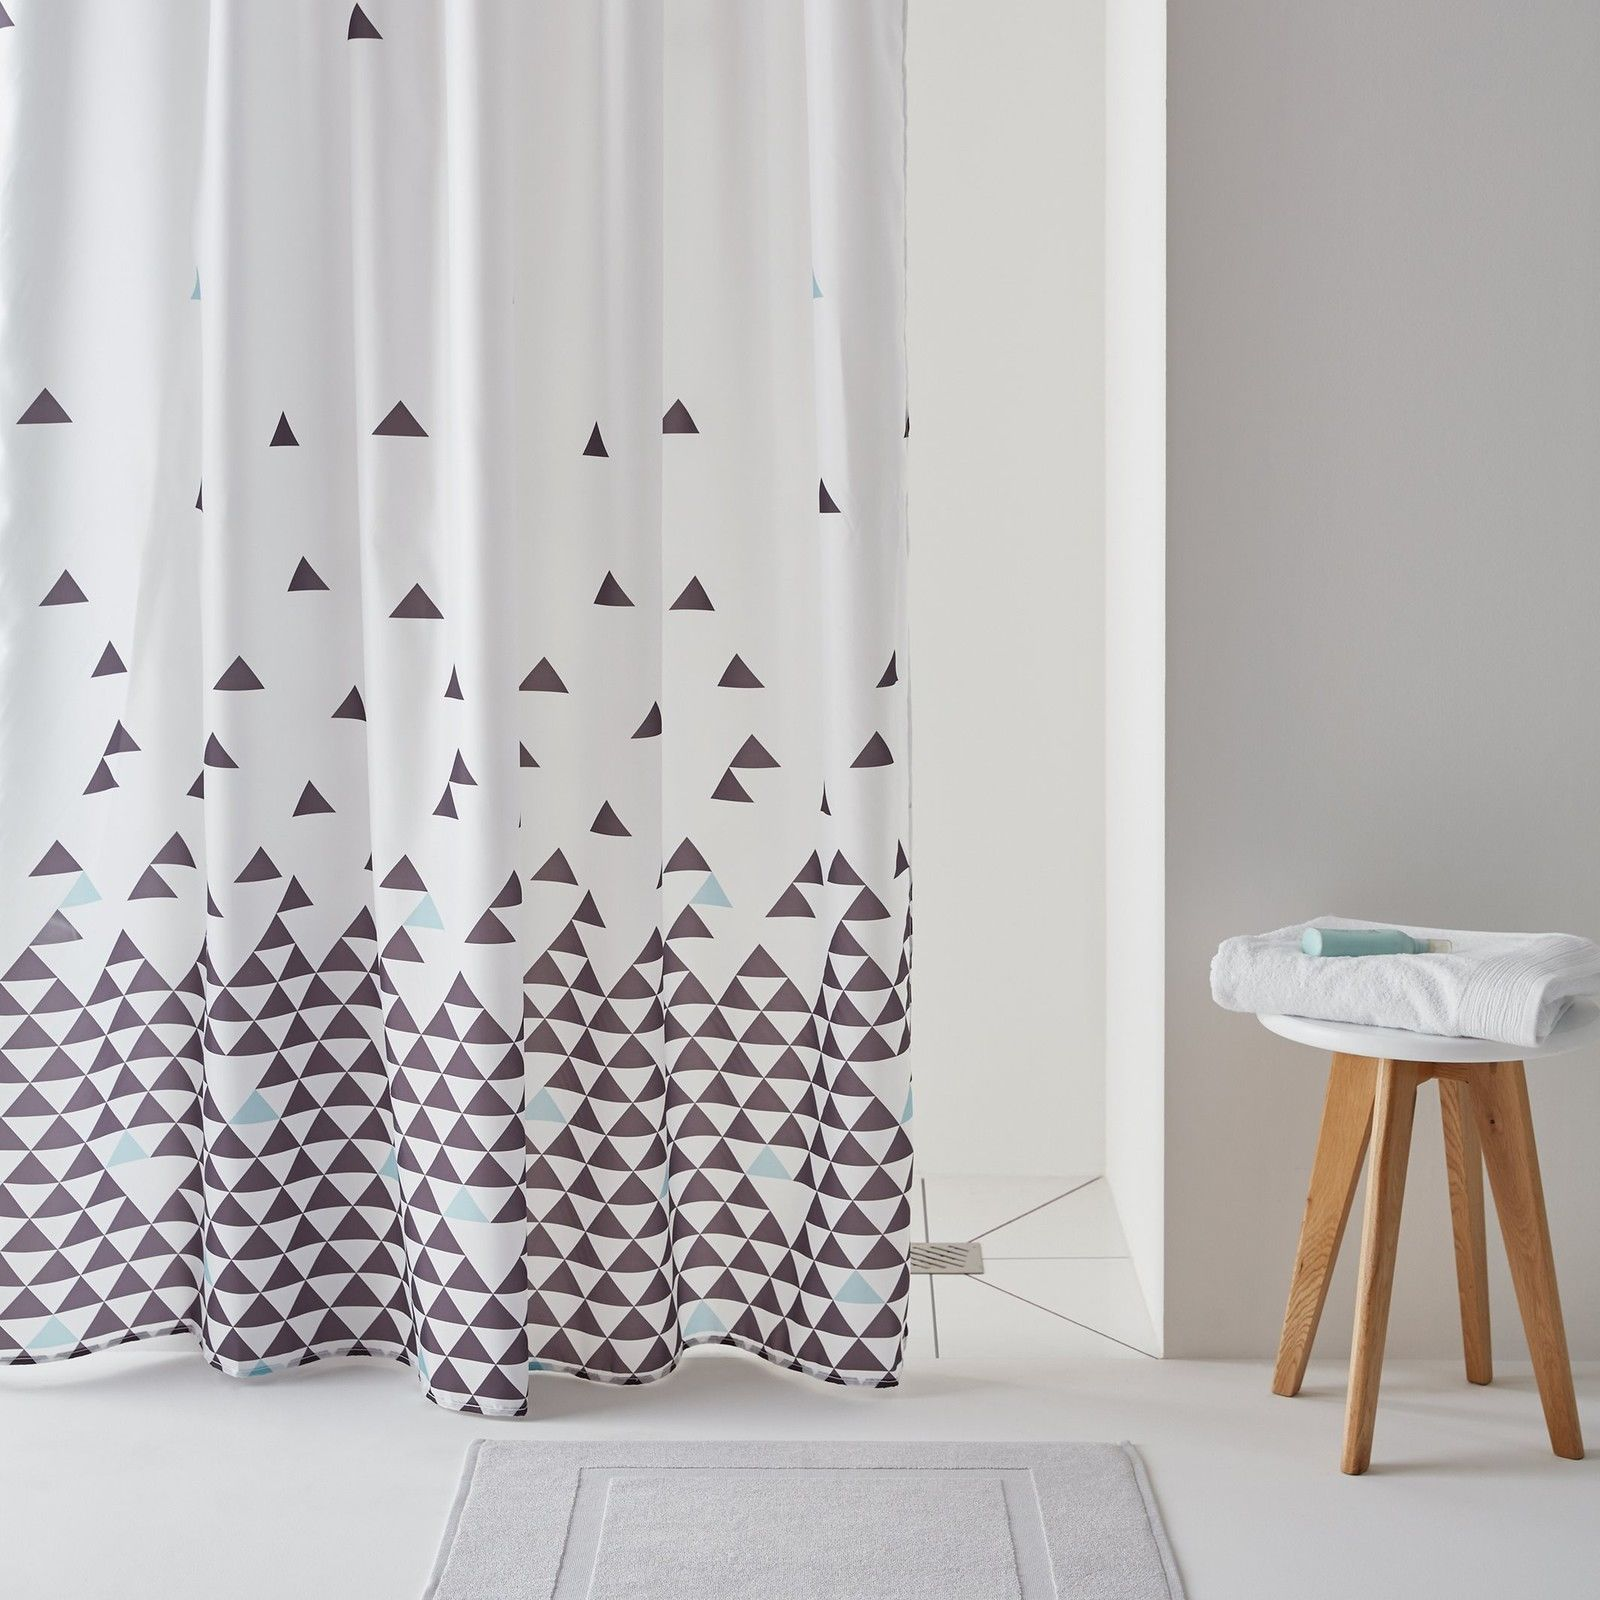 Fly Shower Curtain With Triangle Print Products Pinterest